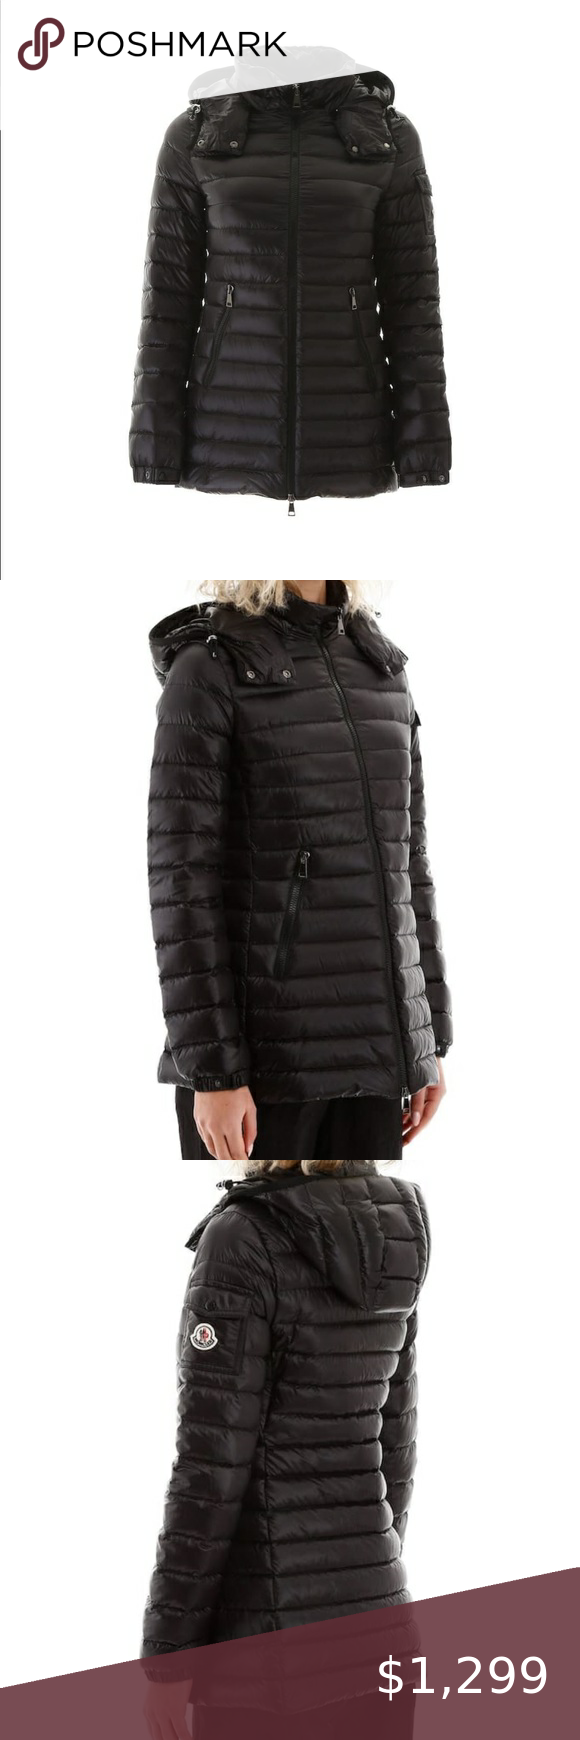 moncler down jacket in 2020 Down jacket, Jackets